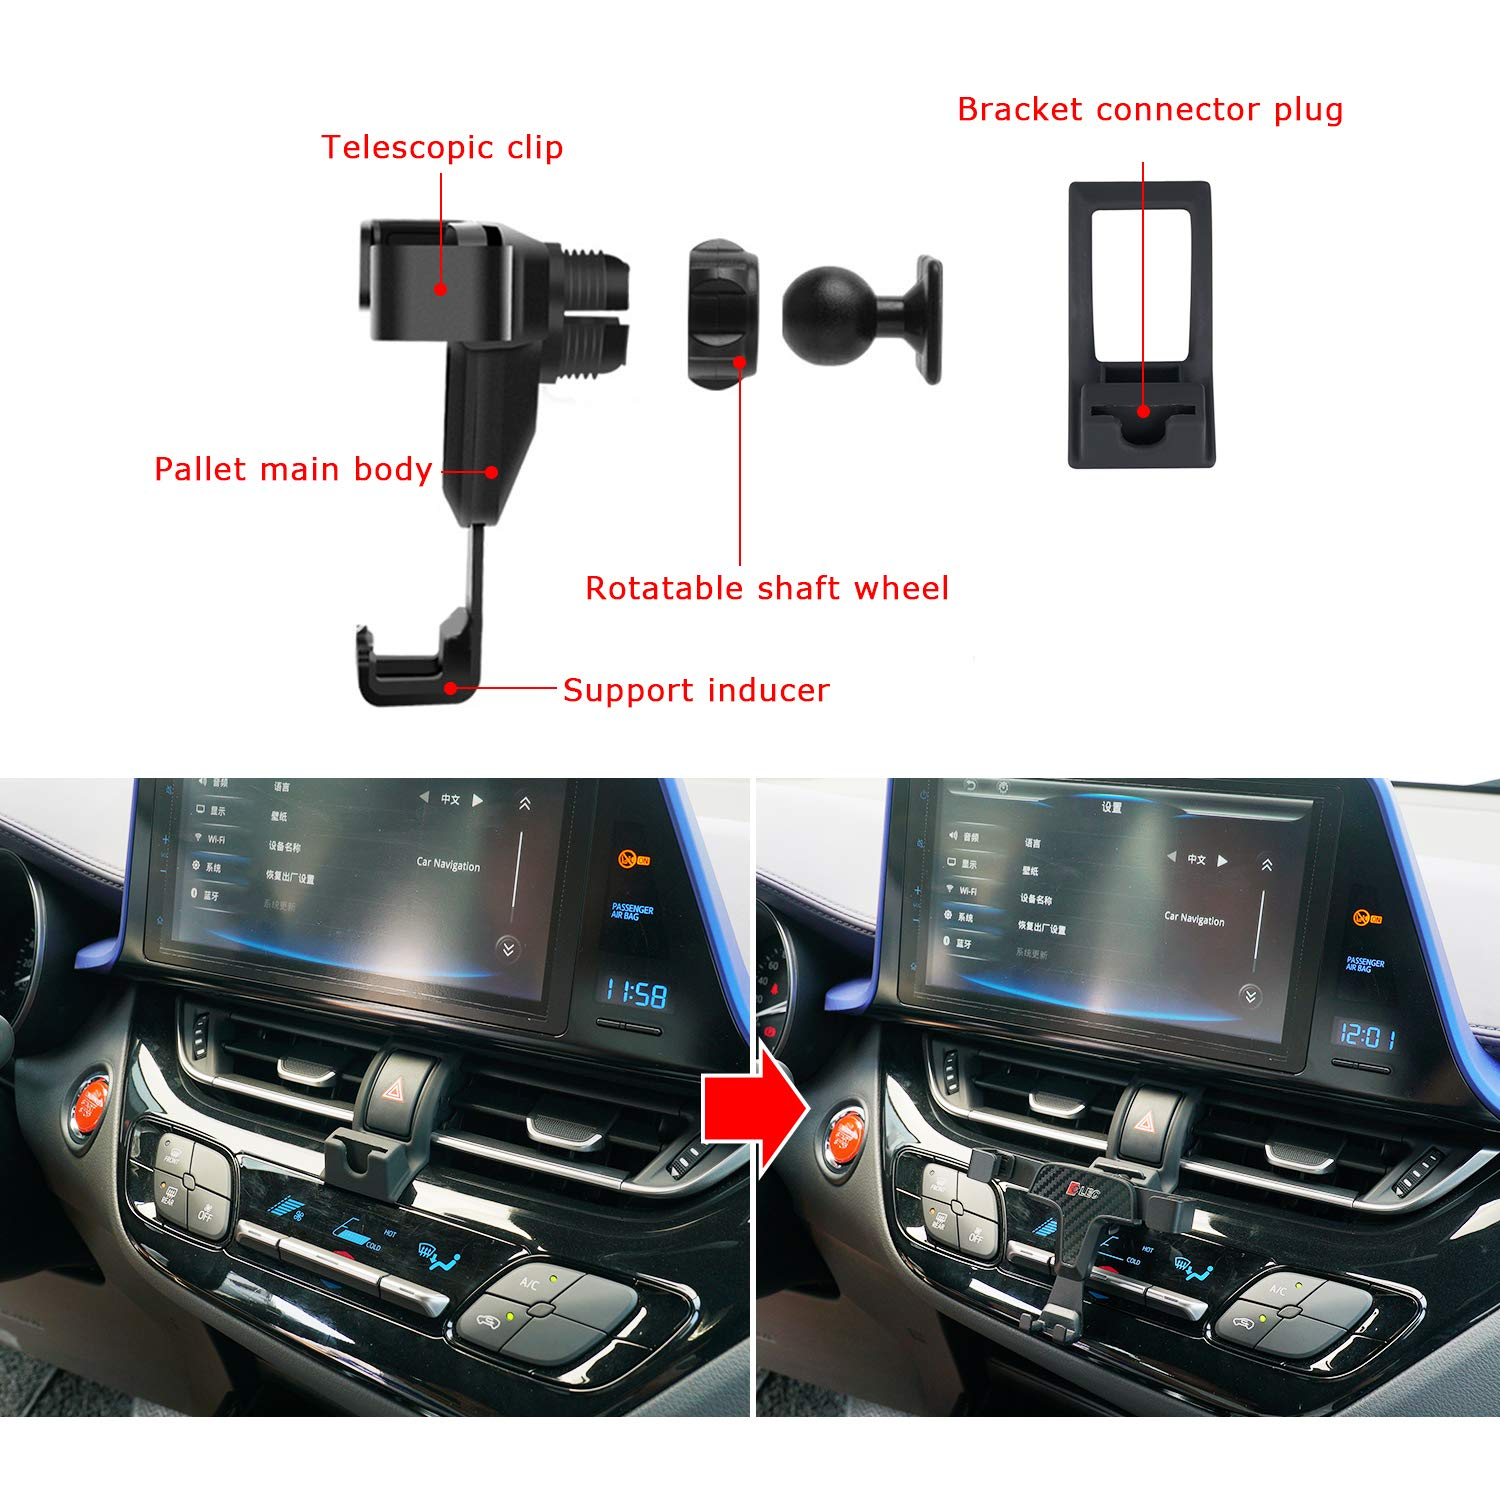 R RUIYA 2018 Toyota CHR Smartphone Cell Phone Mount Holder with Adjustable Air Vent Clip Cover Fit for 3.5-6.0 Inches Phone